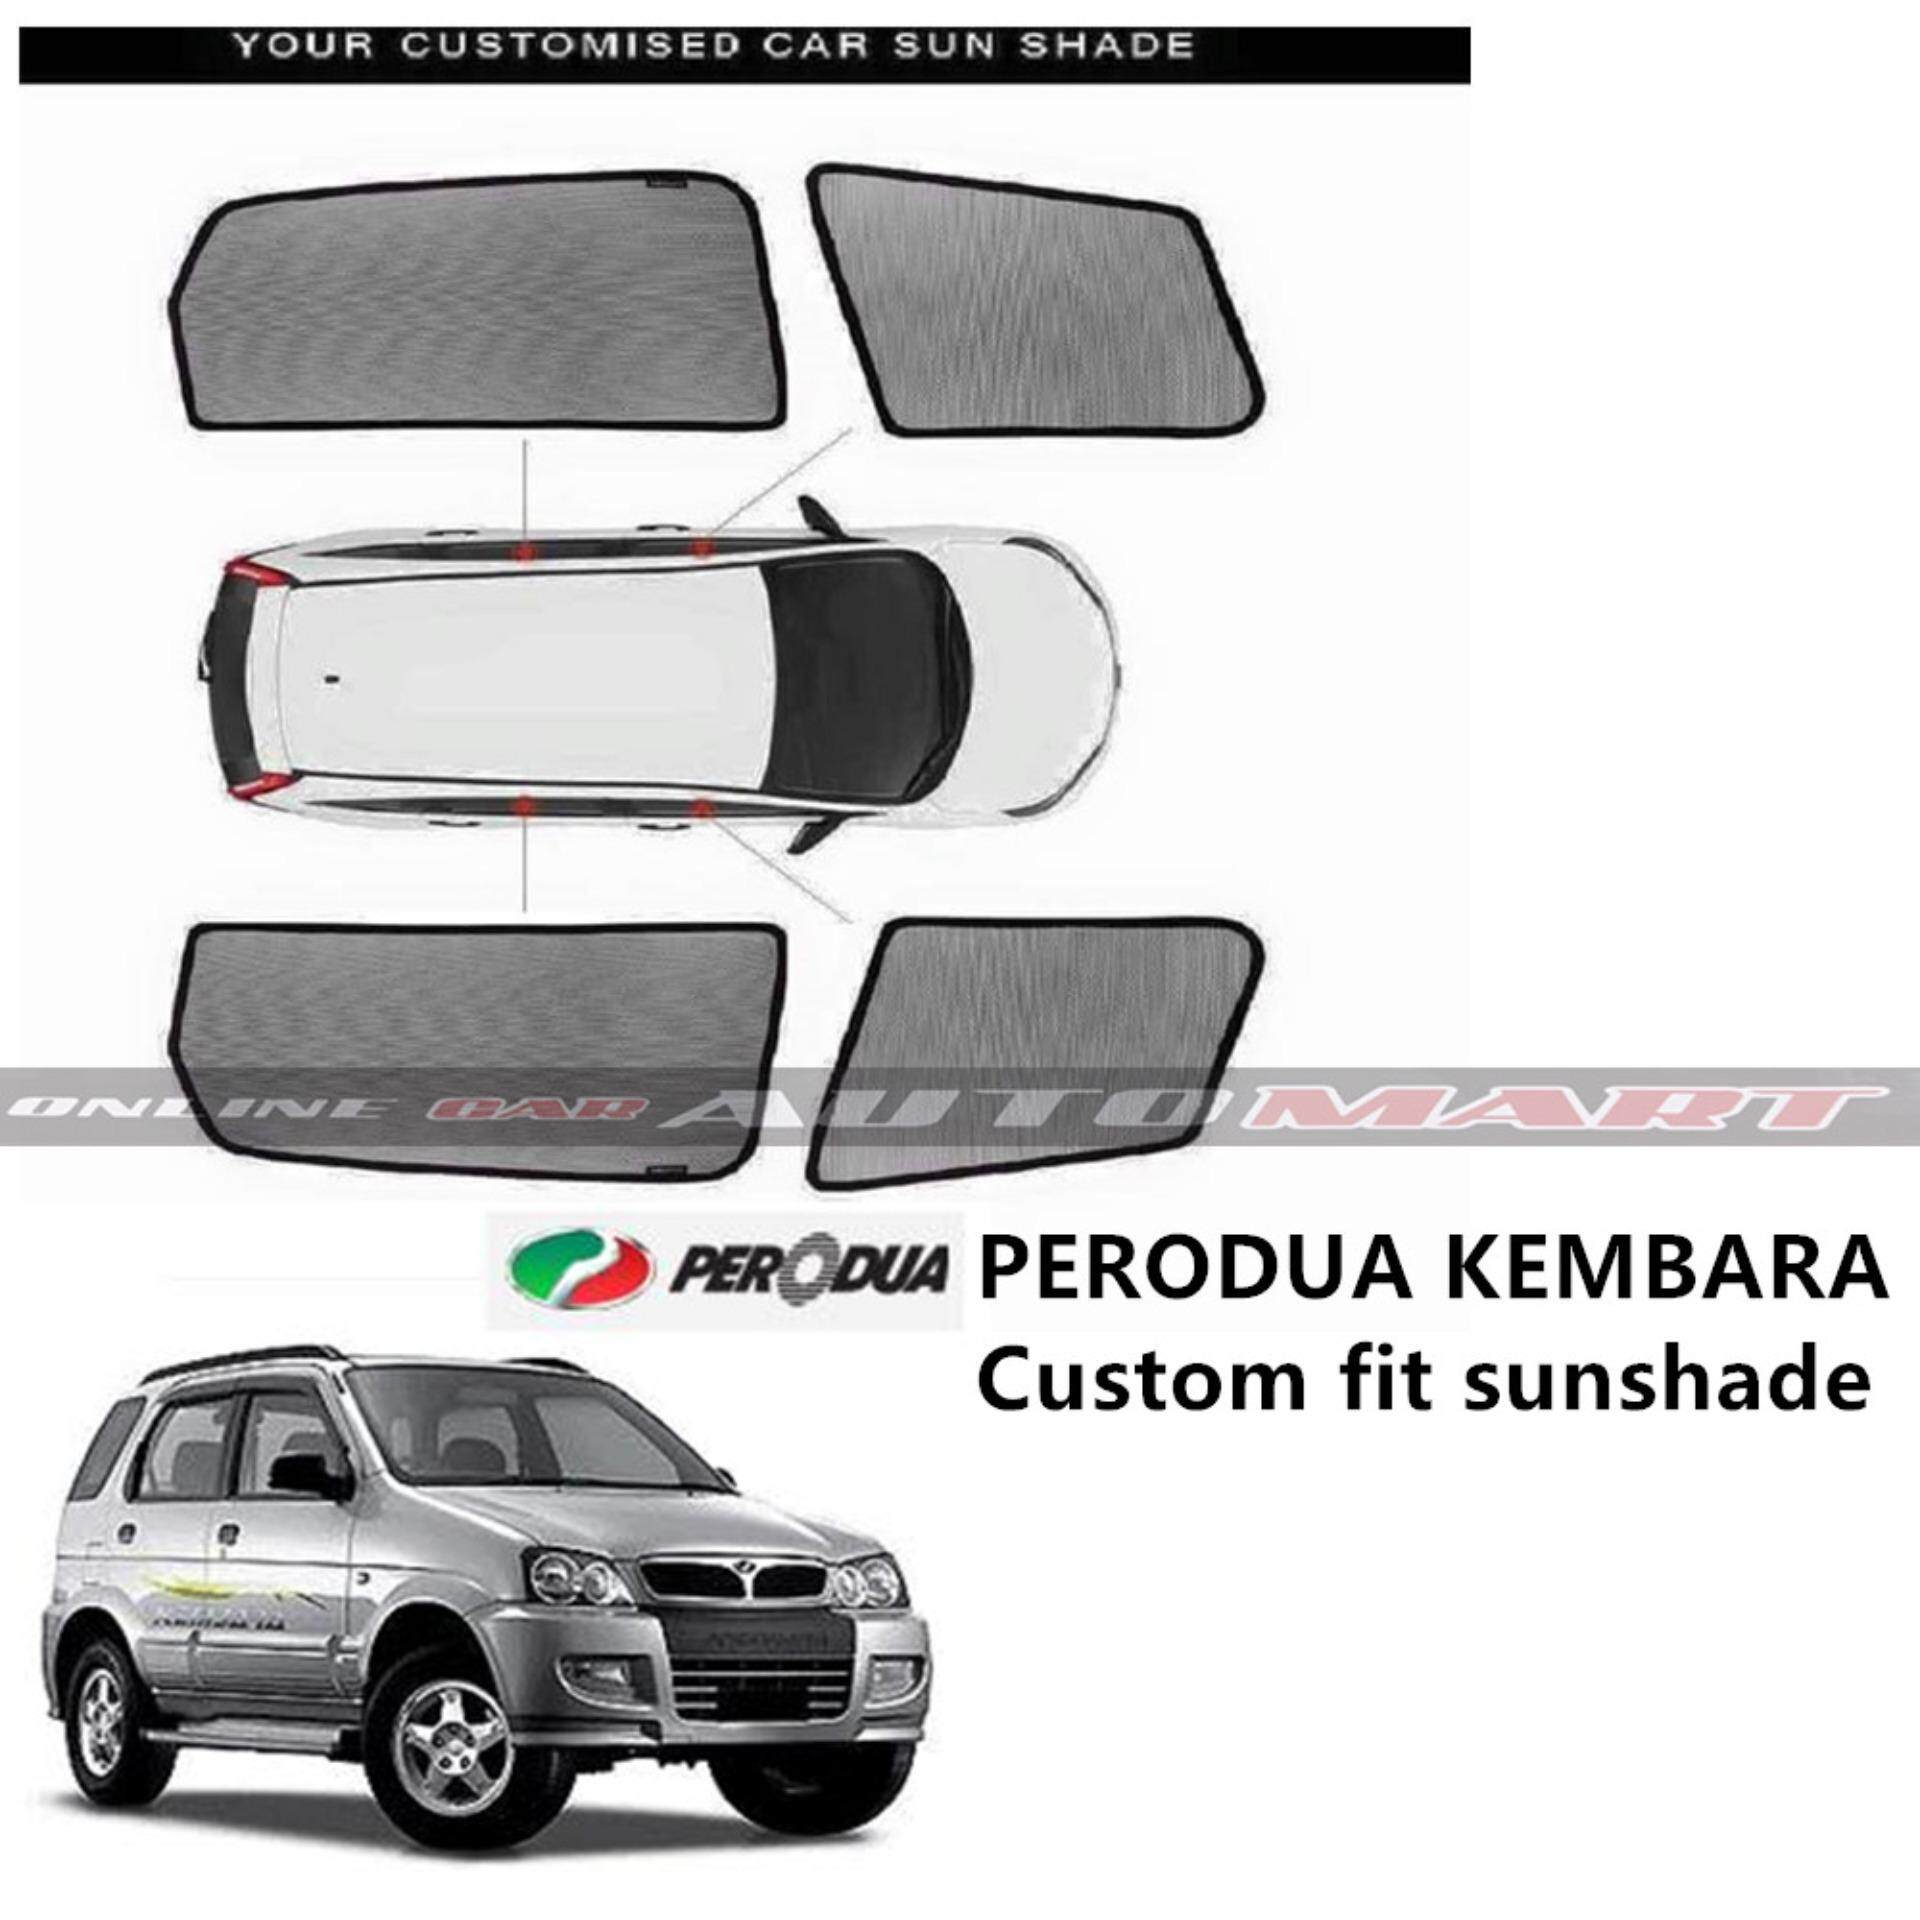 Custom Fit OEM Sunshades/ Sun shades for Perodua Kembara (4PCS)